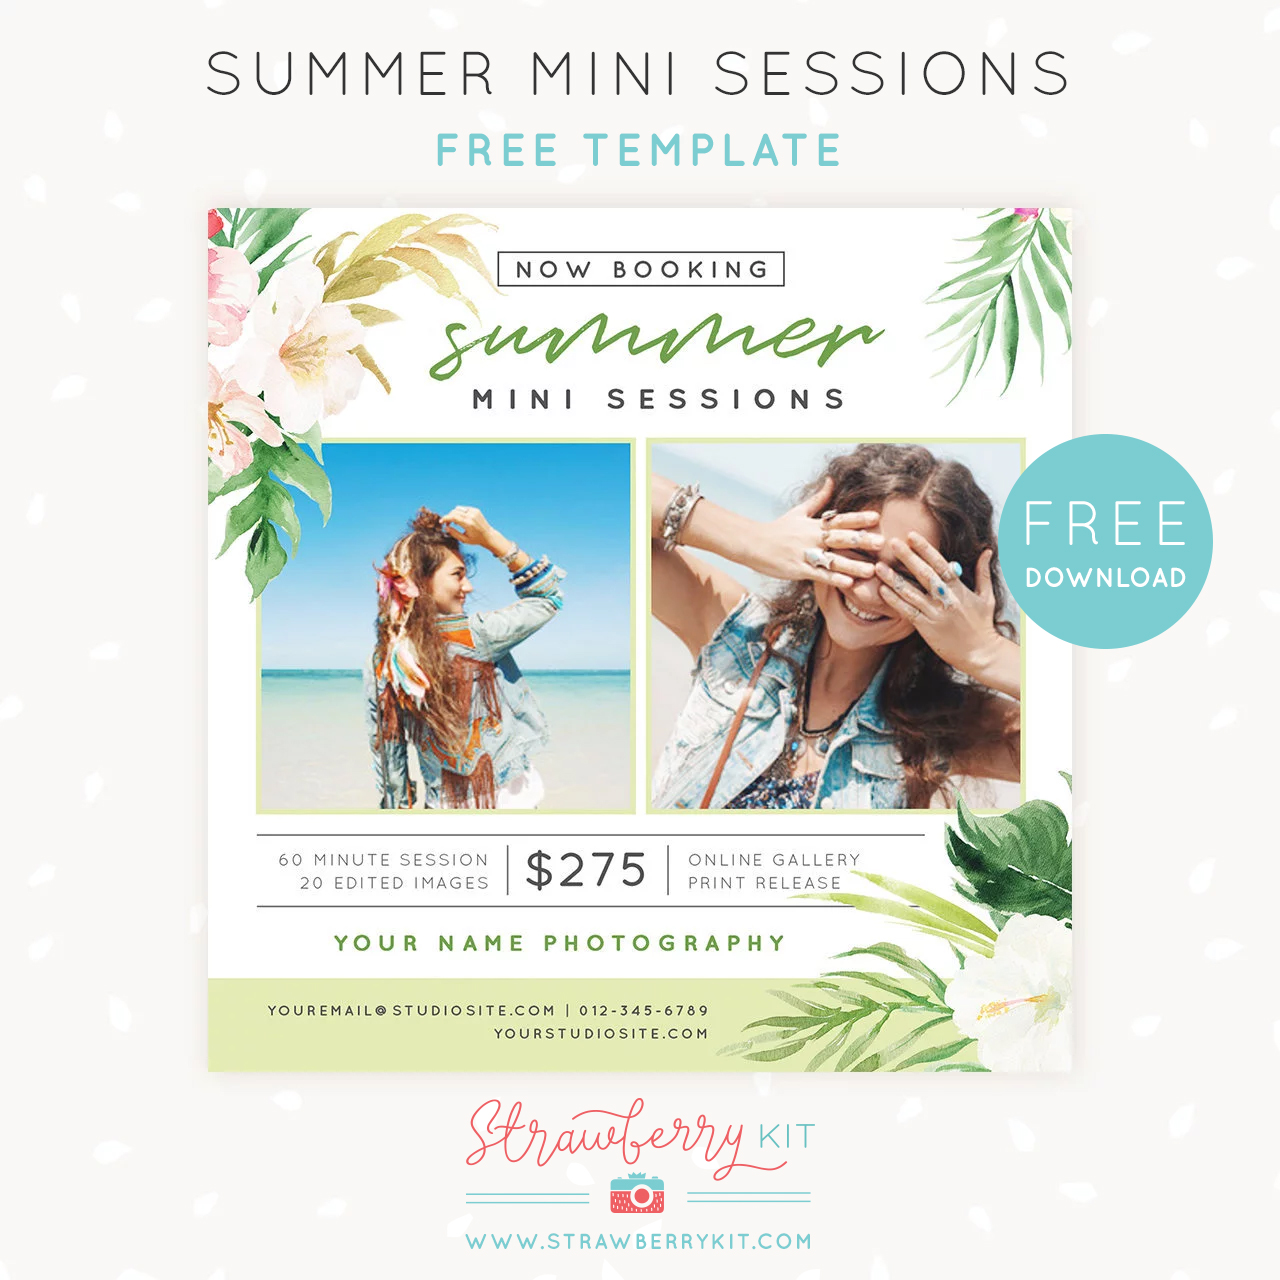 Free Summer Mini Sessions Template For Photo